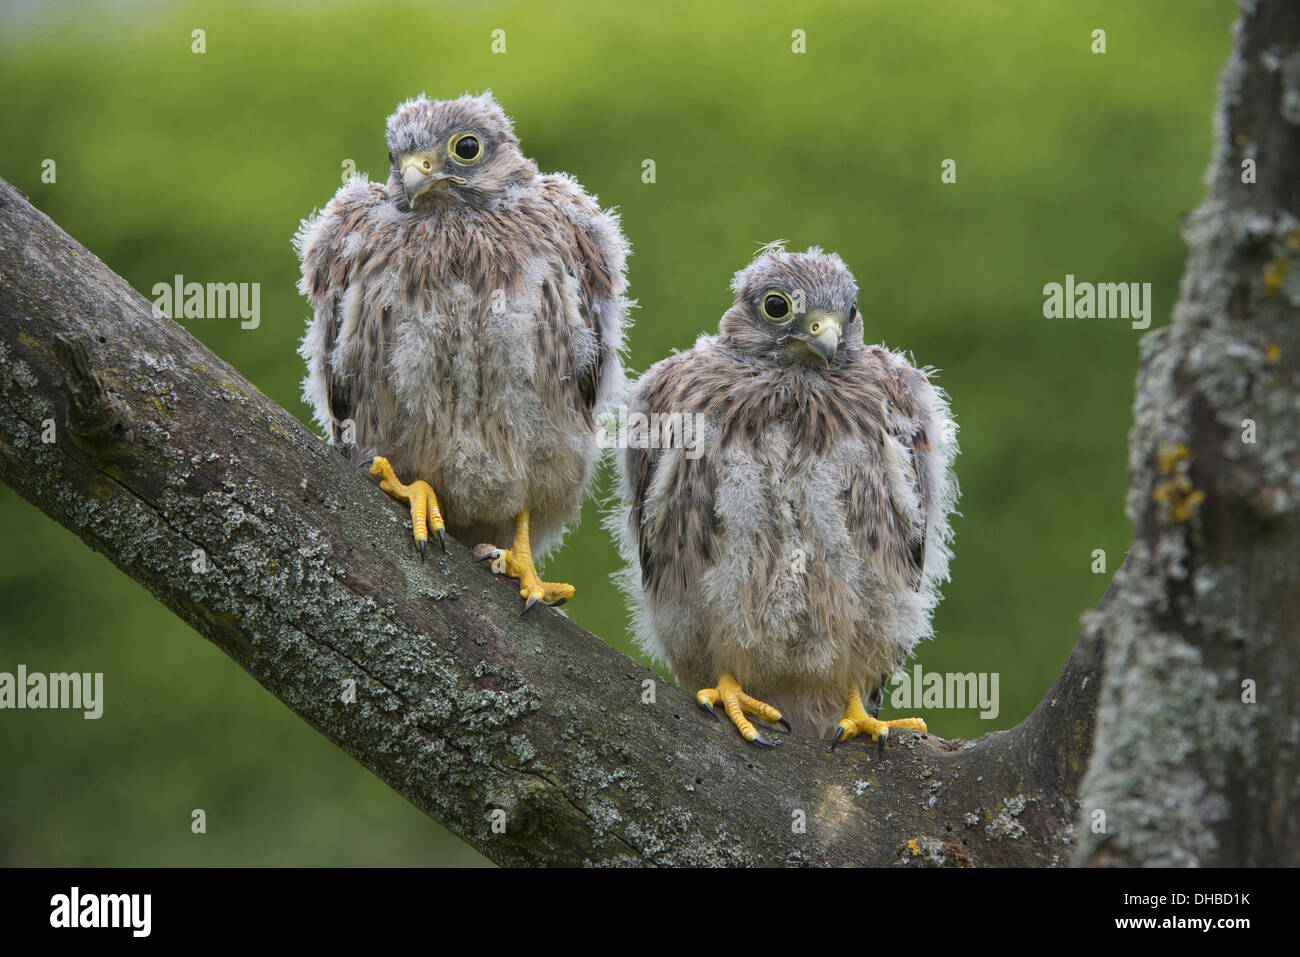 two young common kestrels in a tree, falco tinnunculus, germany, europe - Stock Image